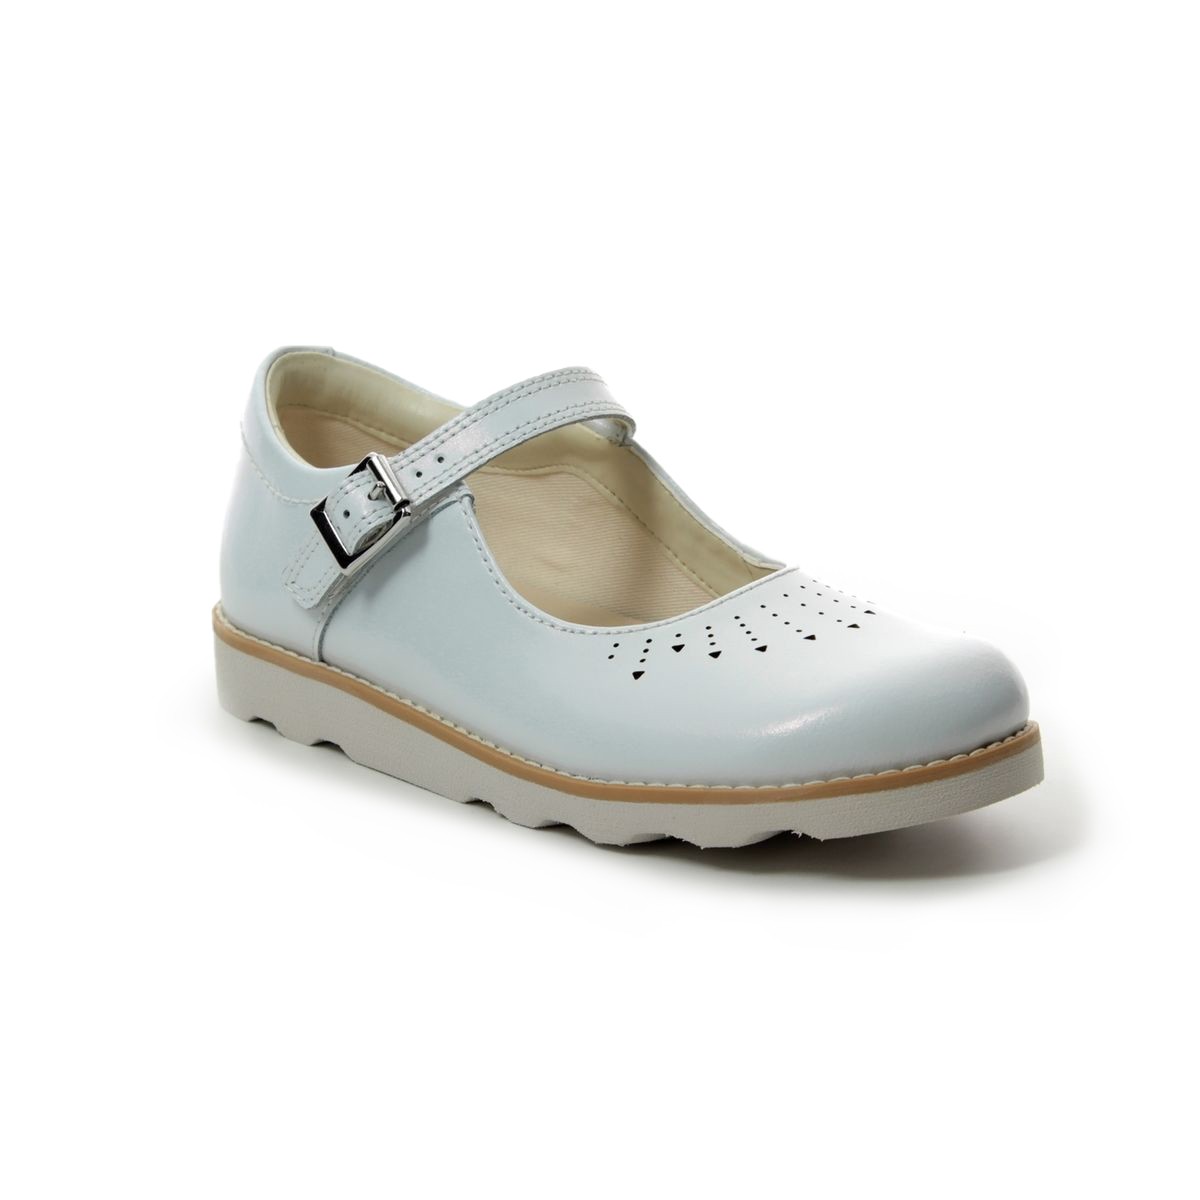 273bf5500698 Clarks School Shoes - White - 411186F CROWN JUMP K